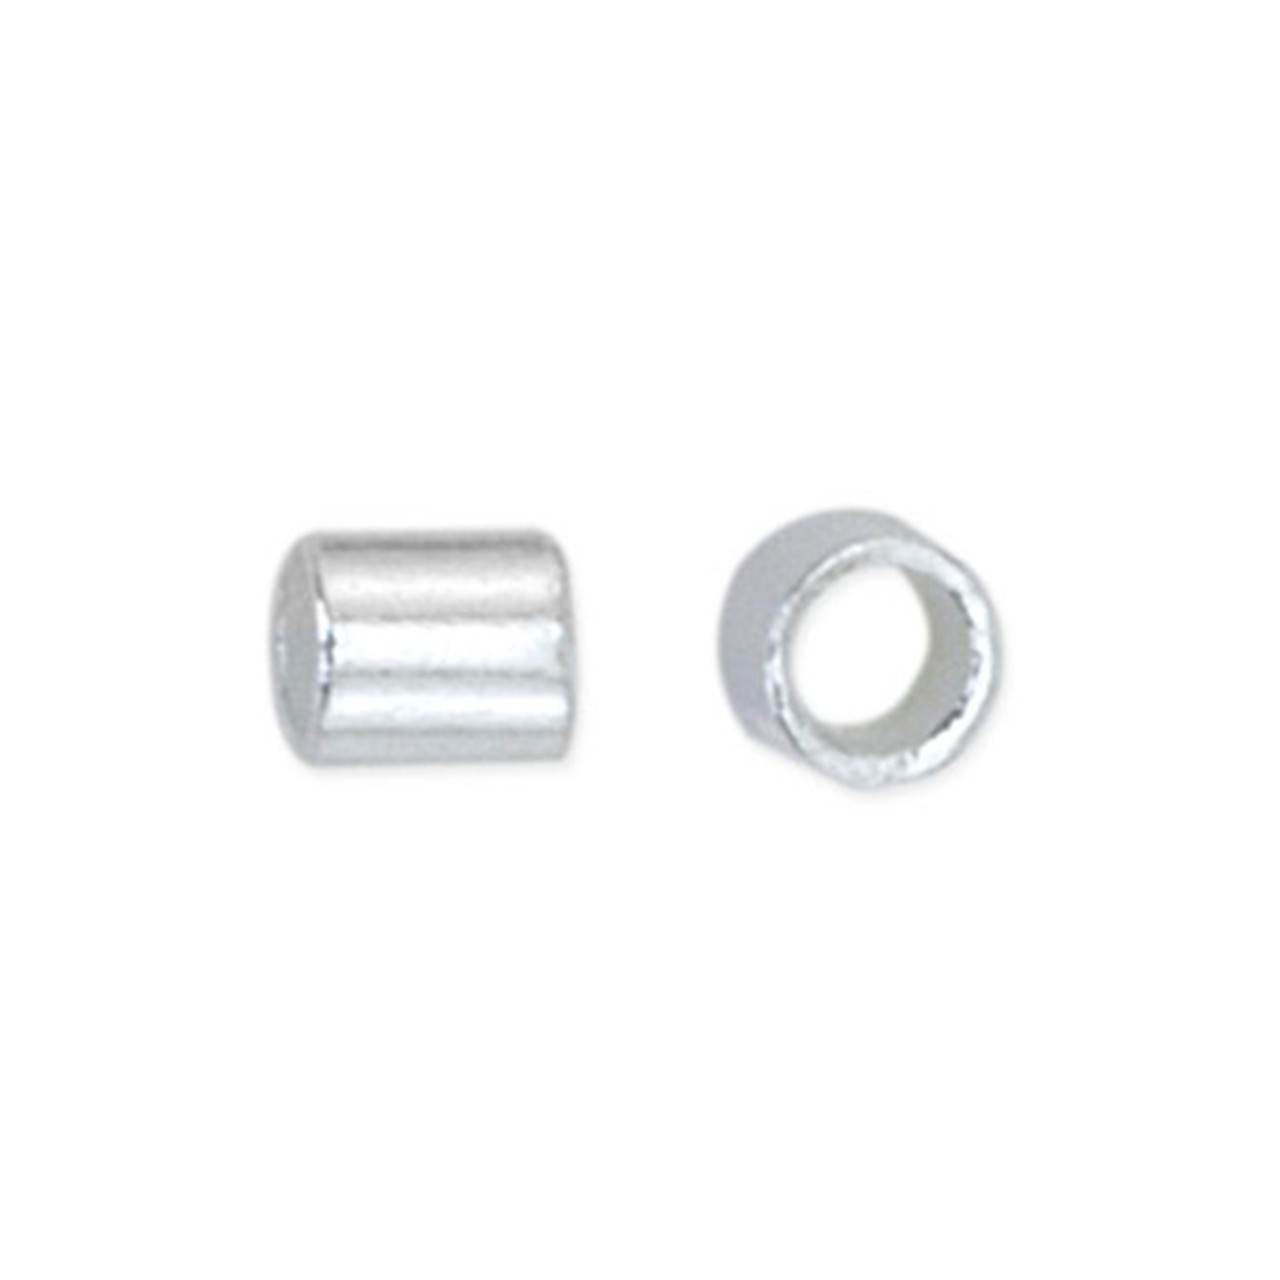 Crimp Tubes, Size #1, 0.8 mm (.031 in) I.D., 1.3 mm (.051 in) O.D., Silver Plated, 1.5 g (.05 oz), appx. 160 pc. Use Micro Crimper Tool with wire 0.25-0.33 mm (.010 -.013 in)